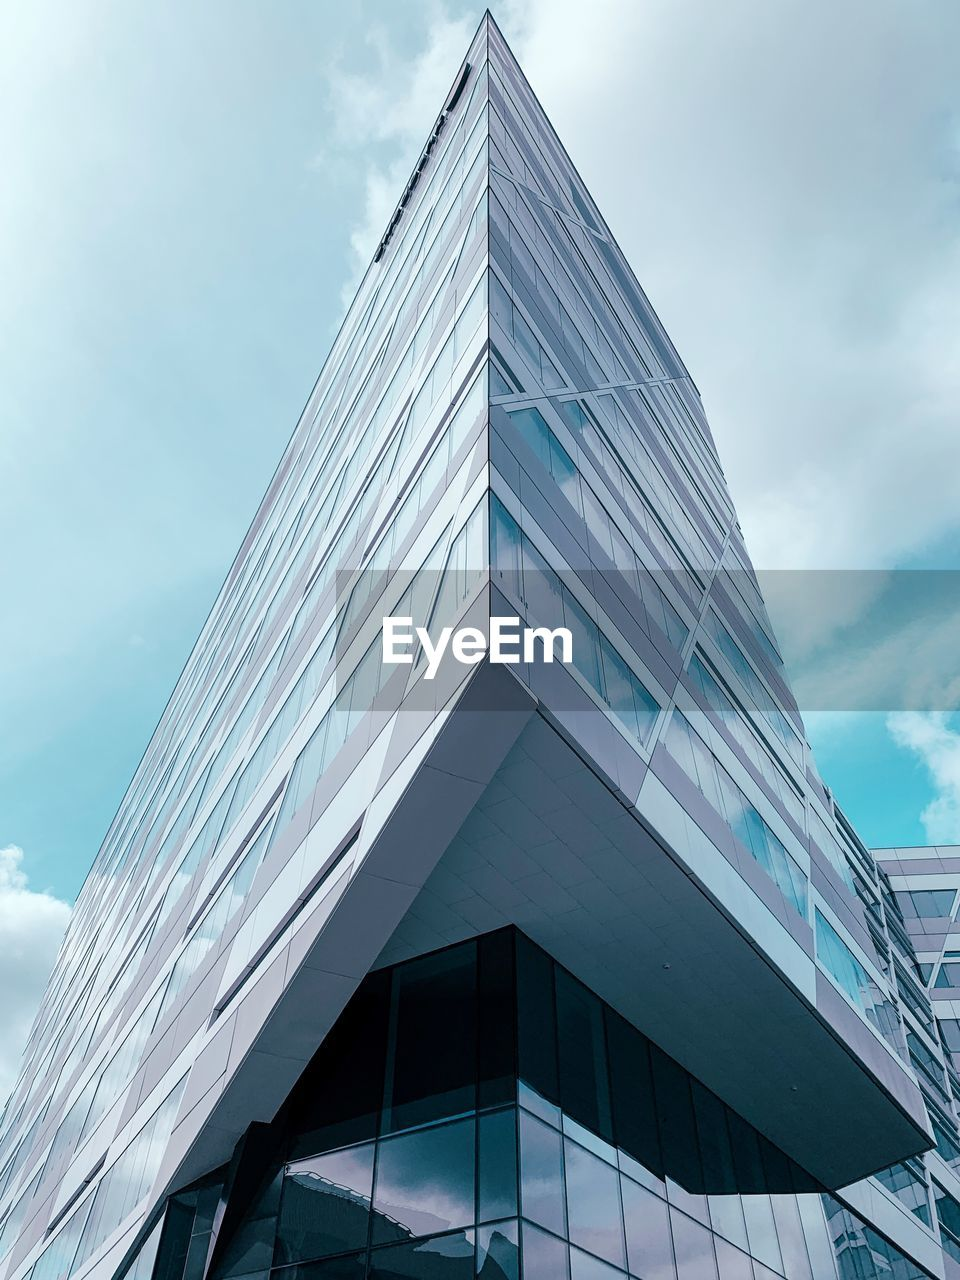 built structure, architecture, building exterior, sky, low angle view, cloud - sky, modern, office, building, glass - material, office building exterior, day, city, nature, no people, tall - high, outdoors, reflection, window, skyscraper